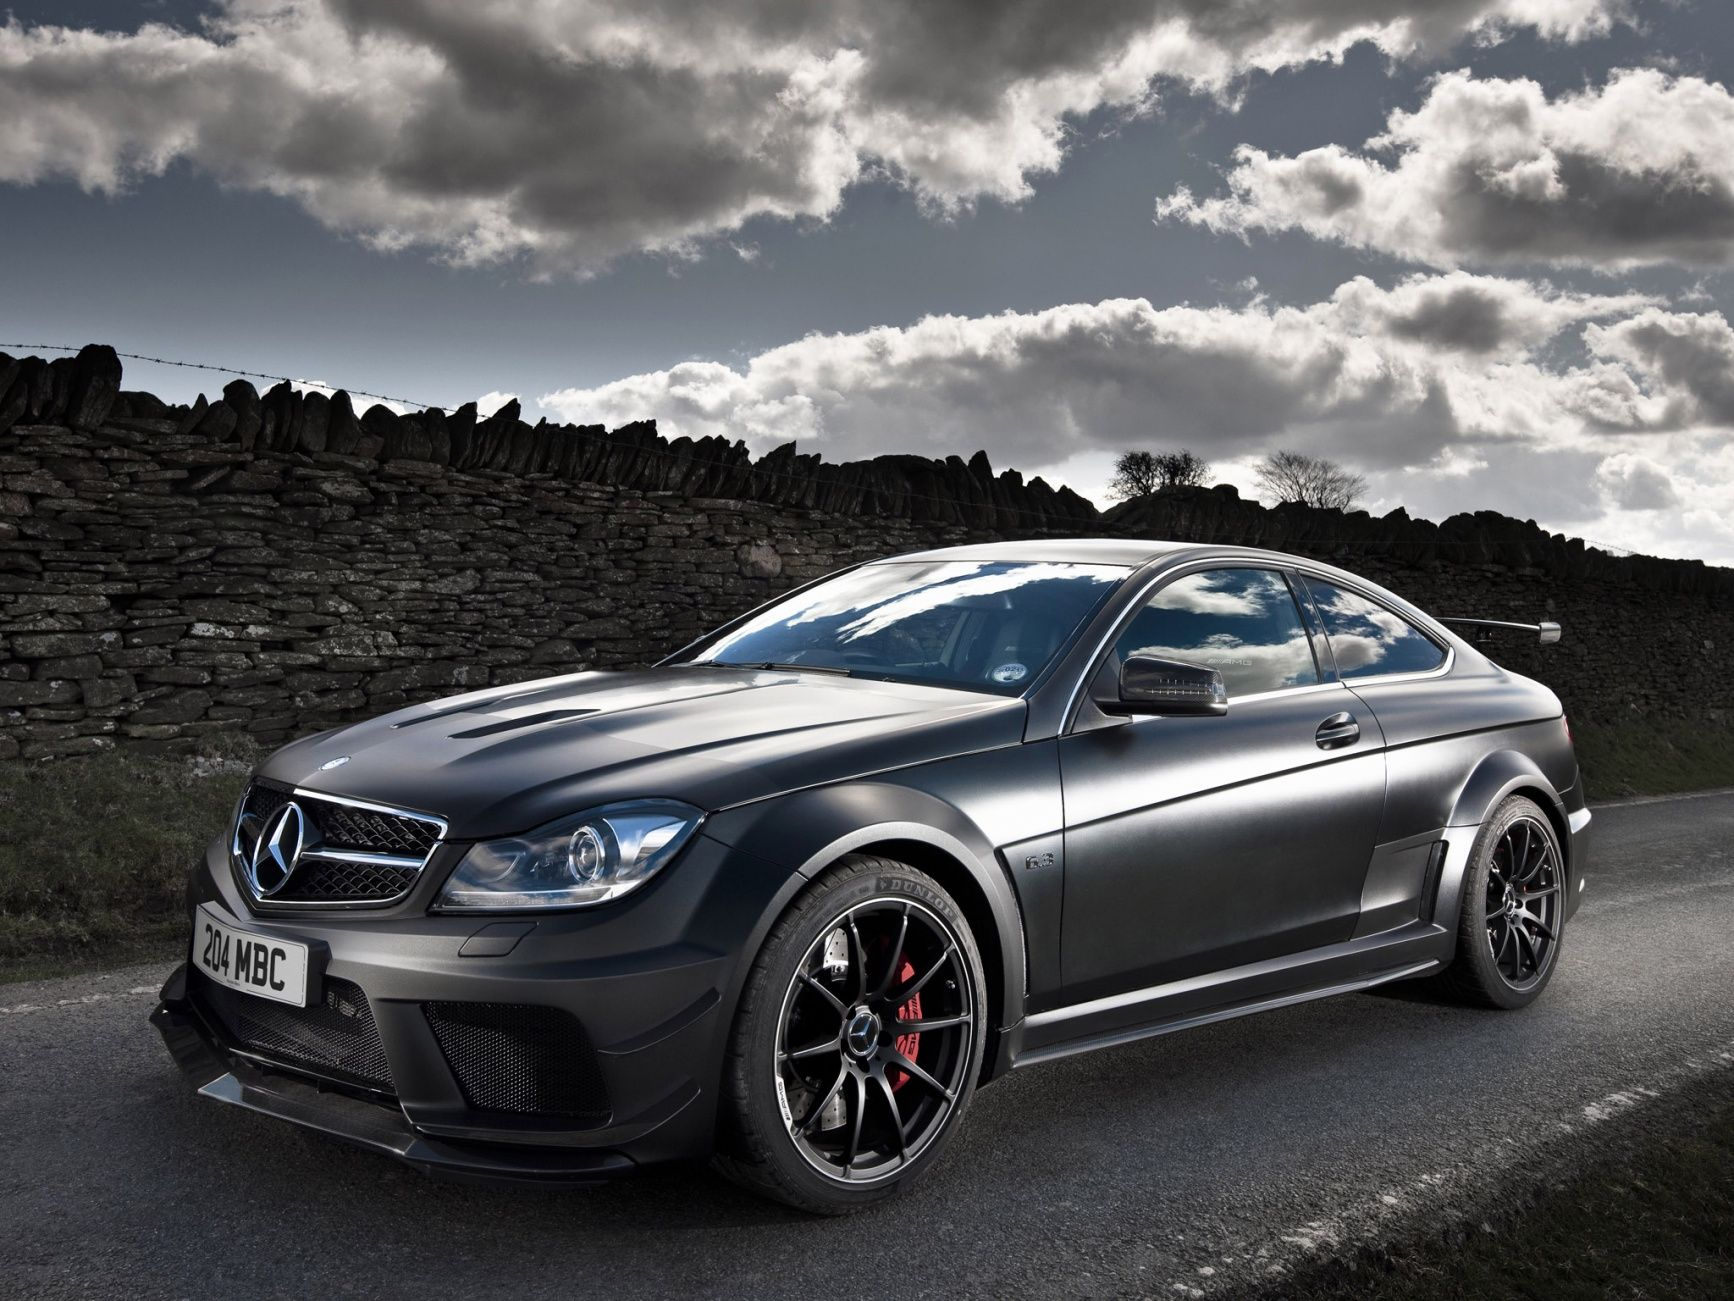 Mercedes benz c63 amg black series ok id drive it for a day